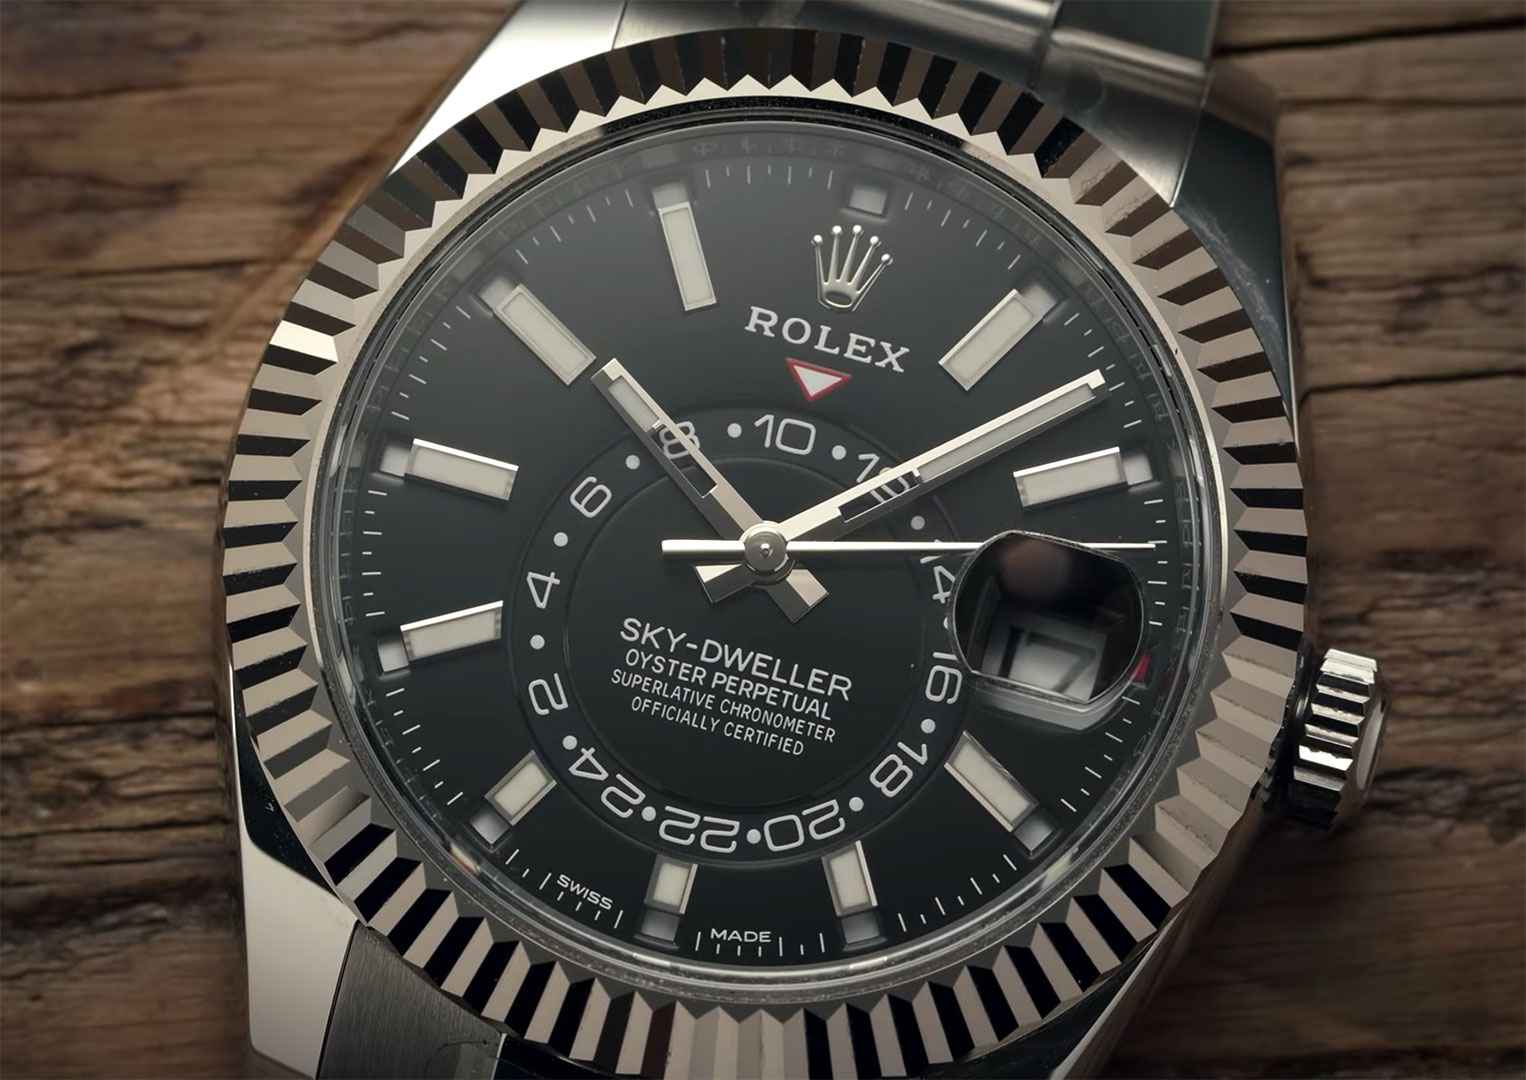 The price of a Rolex Sky-Dweller can range anywhere between £11,850 all the way up to £40,000. The price is dependant on the material the watch is made from